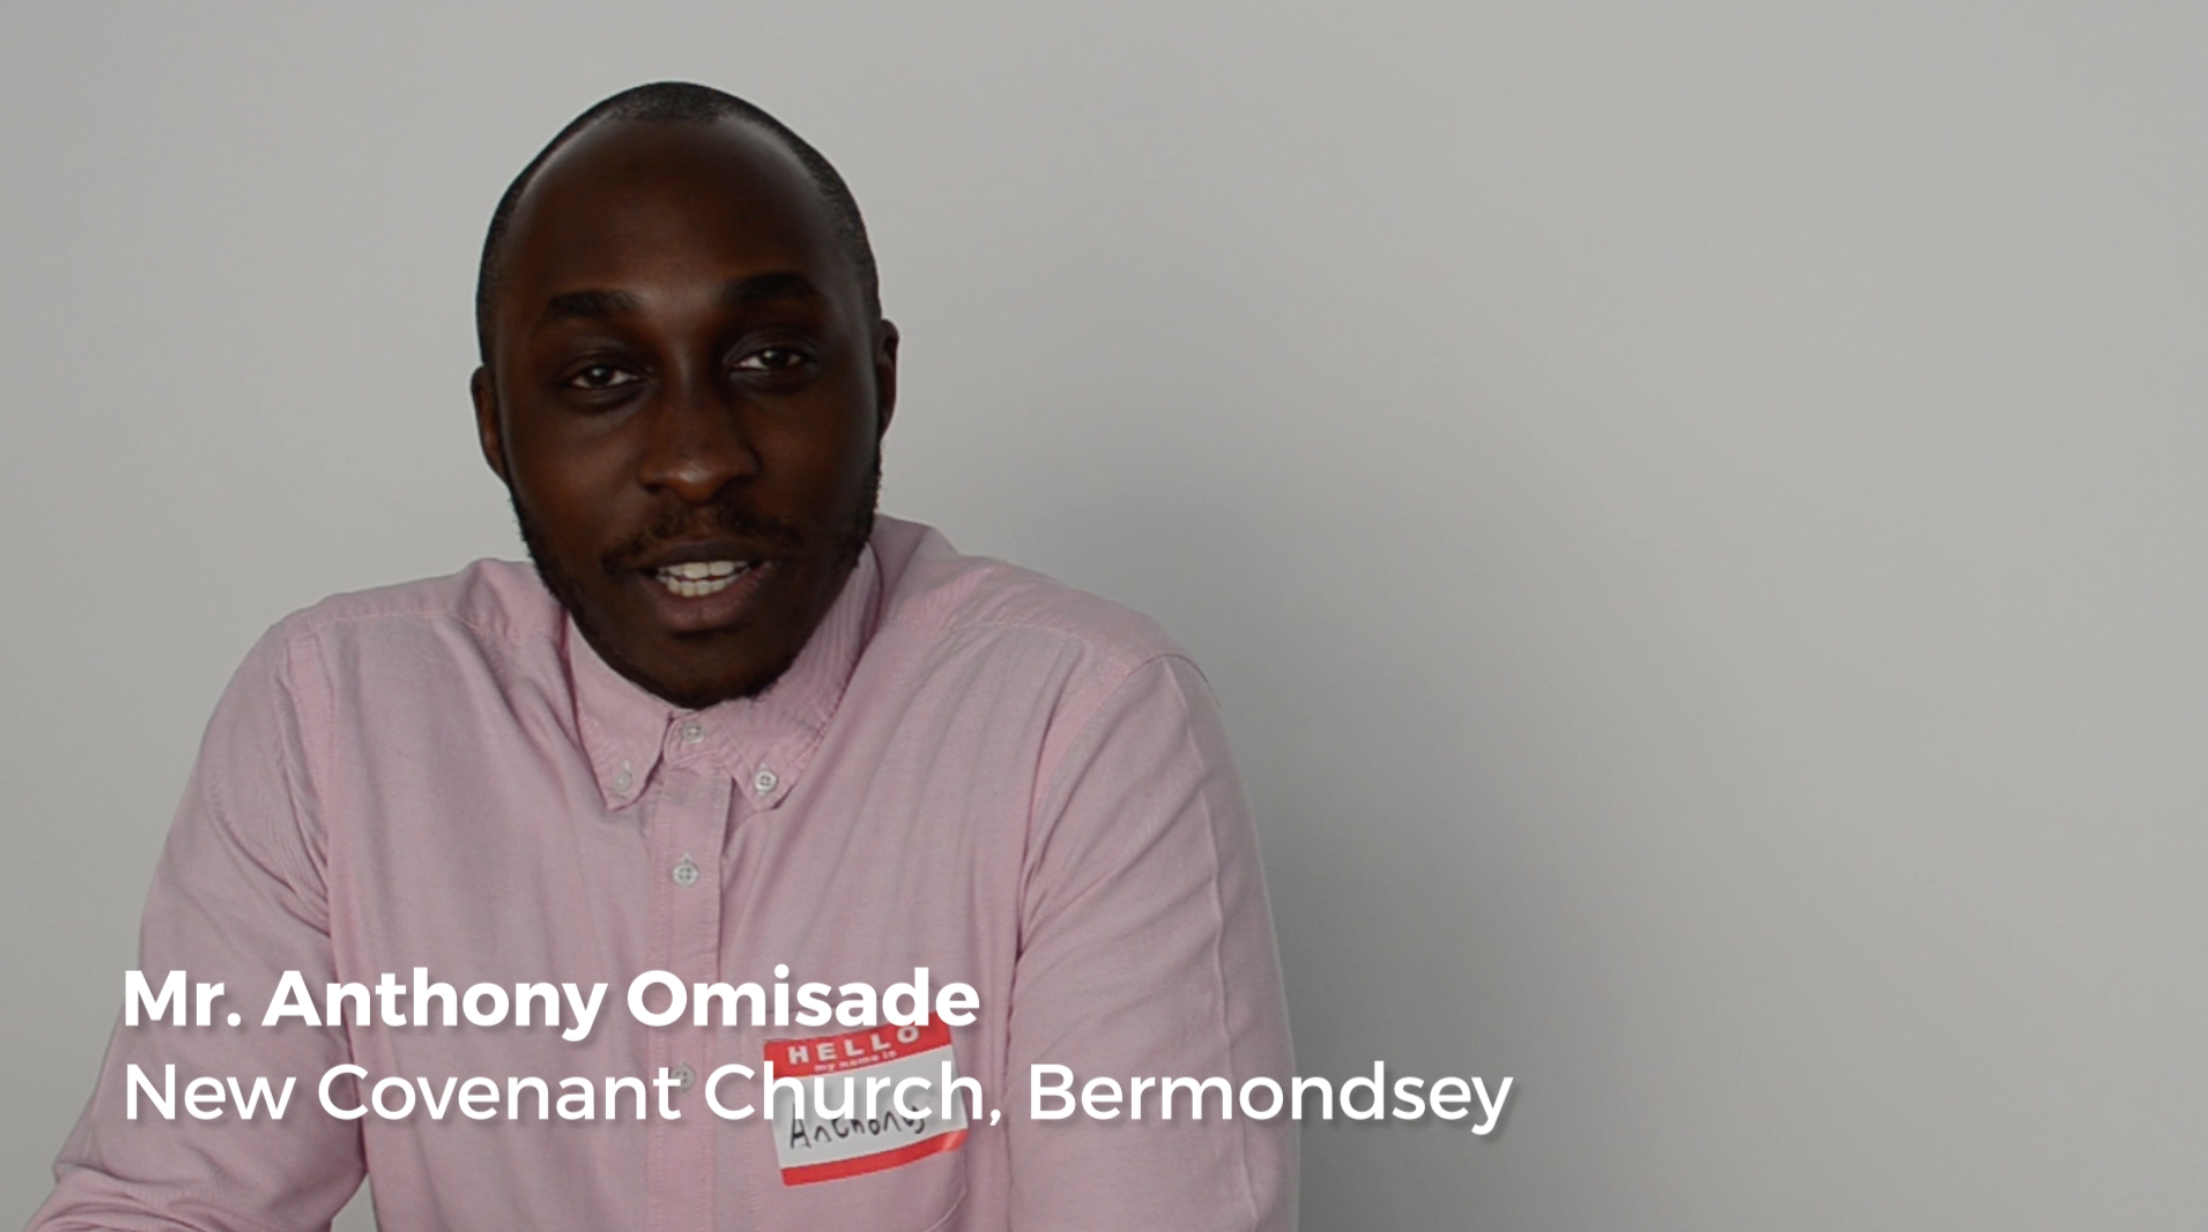 Anthony Omisade